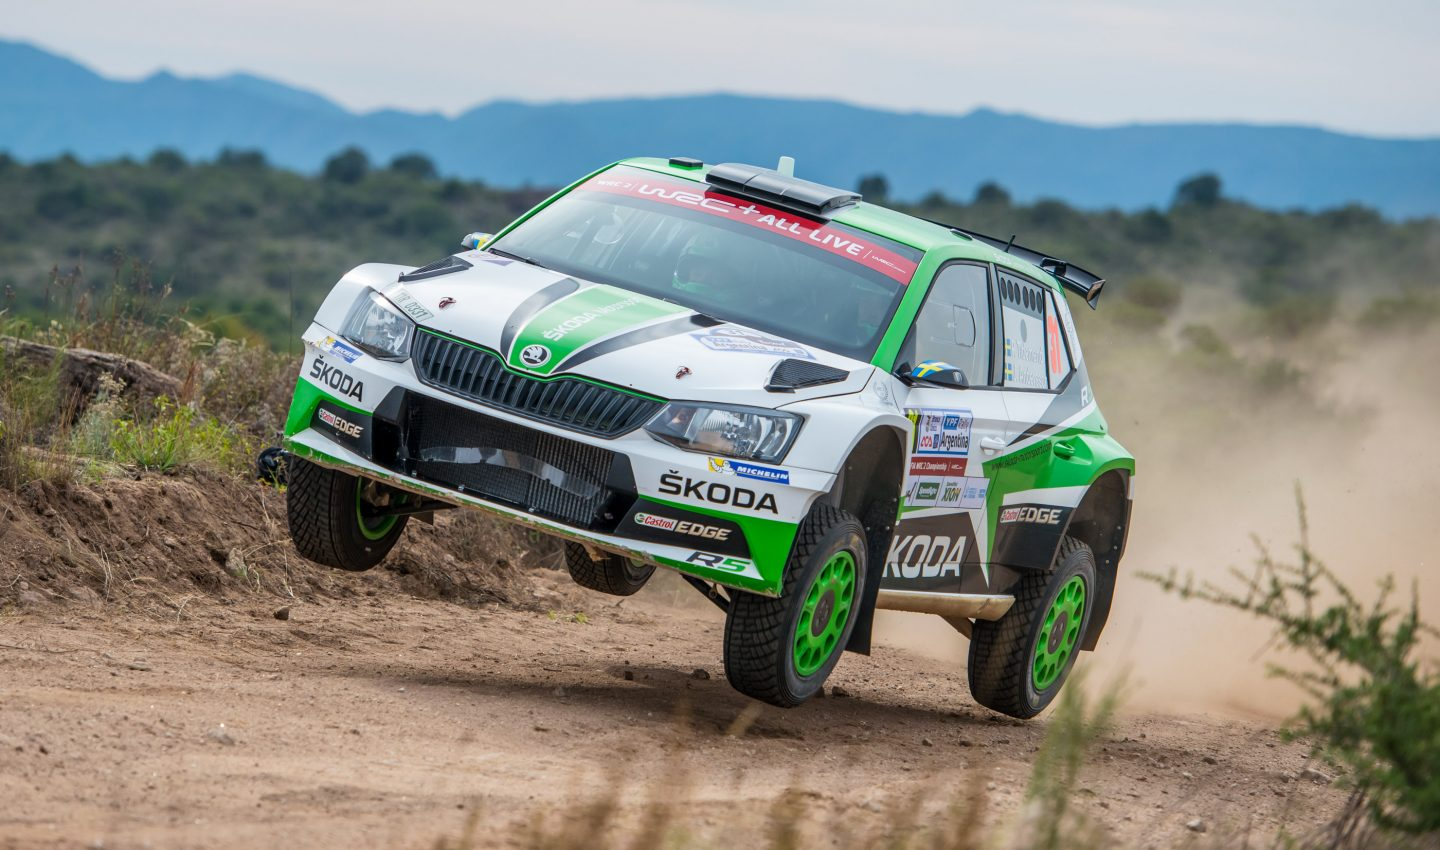 rally argentina double wrc 2 lead for koda with pontus tidemand ahead of kalle rovanper. Black Bedroom Furniture Sets. Home Design Ideas